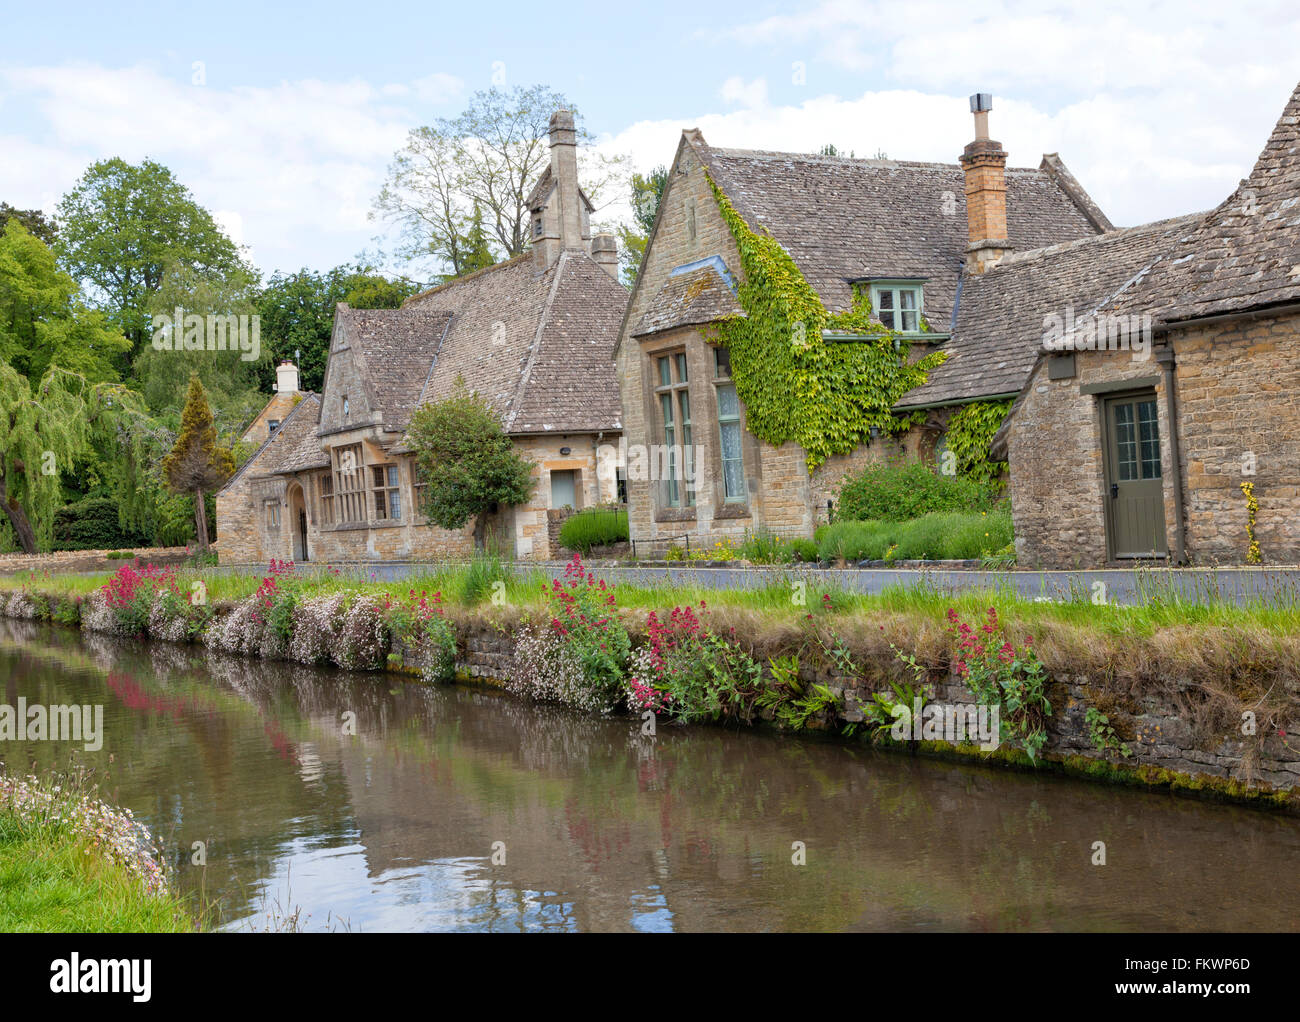 English Stone Cottage english stone cottages in the traditional cotswold style along